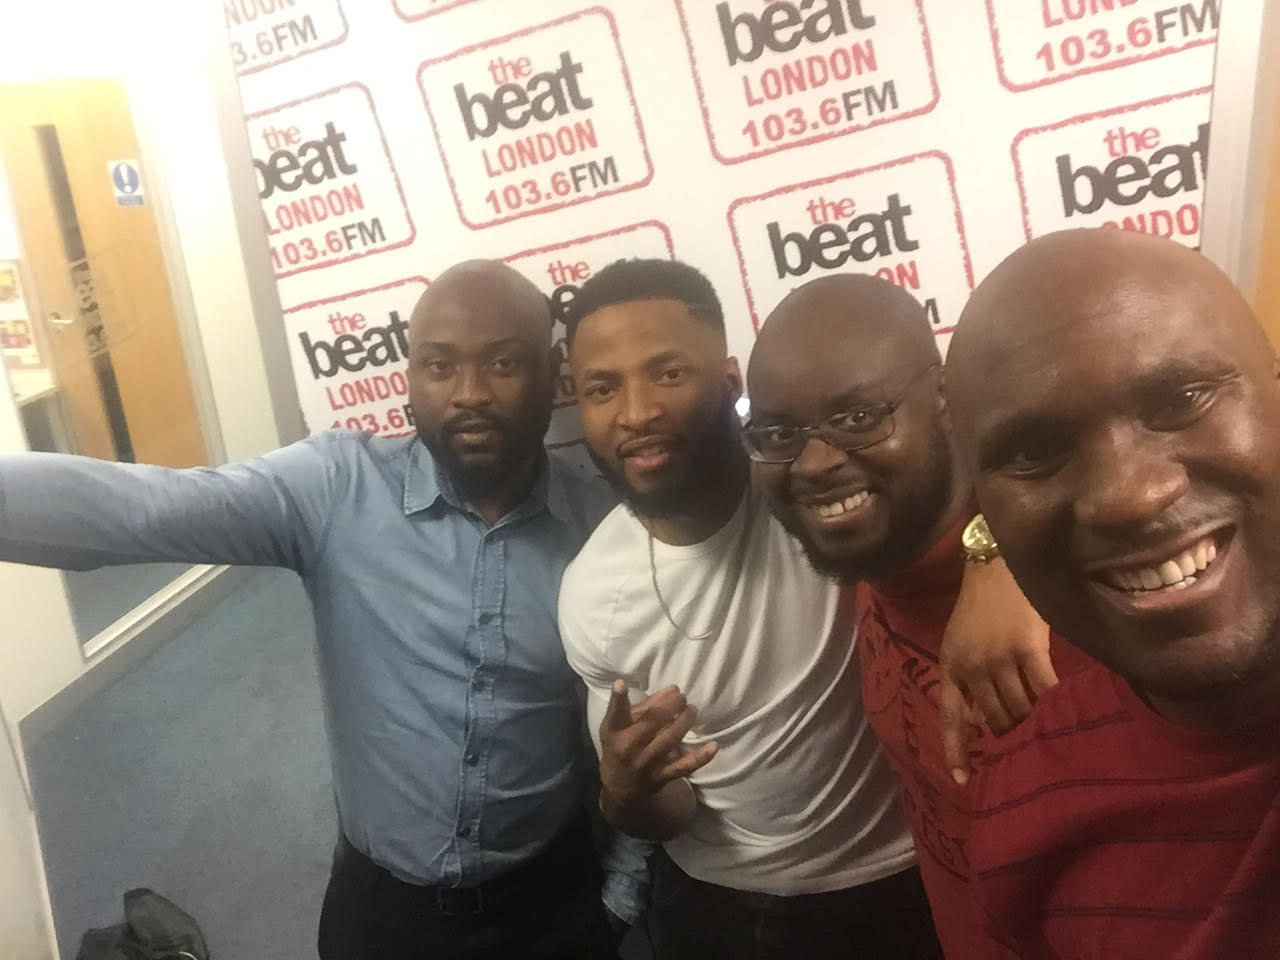 Afrohits On The Beat London, 103.6FM (03/11/2016)